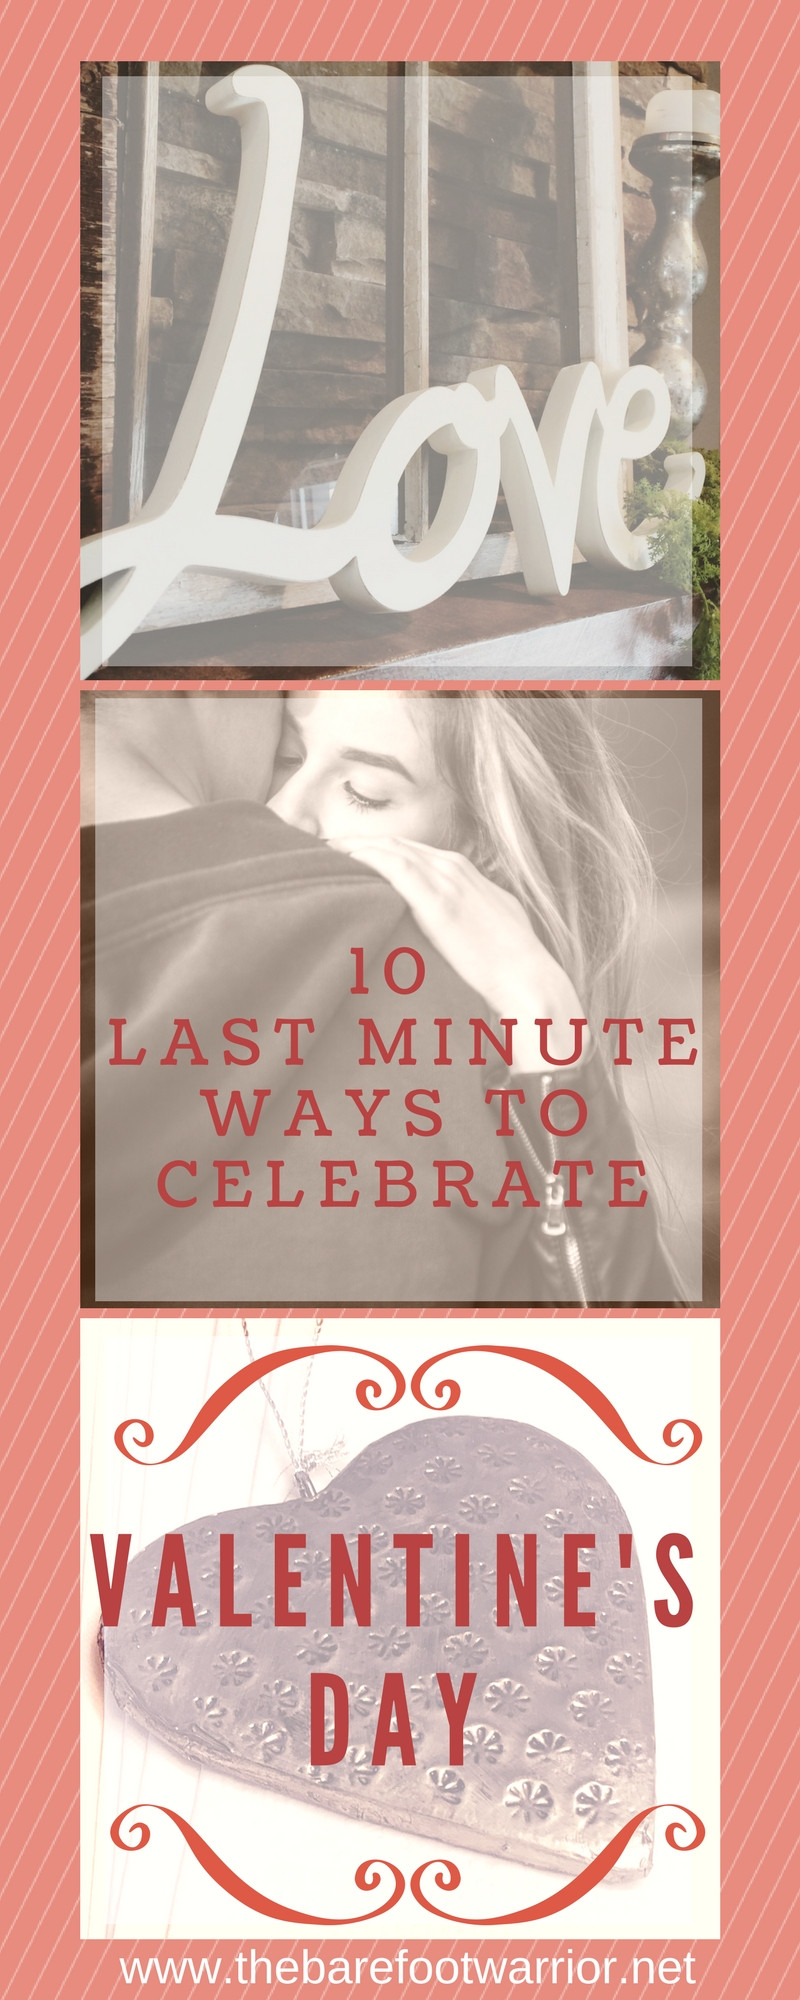 10 last minute ways to celebrate Valentines's Day